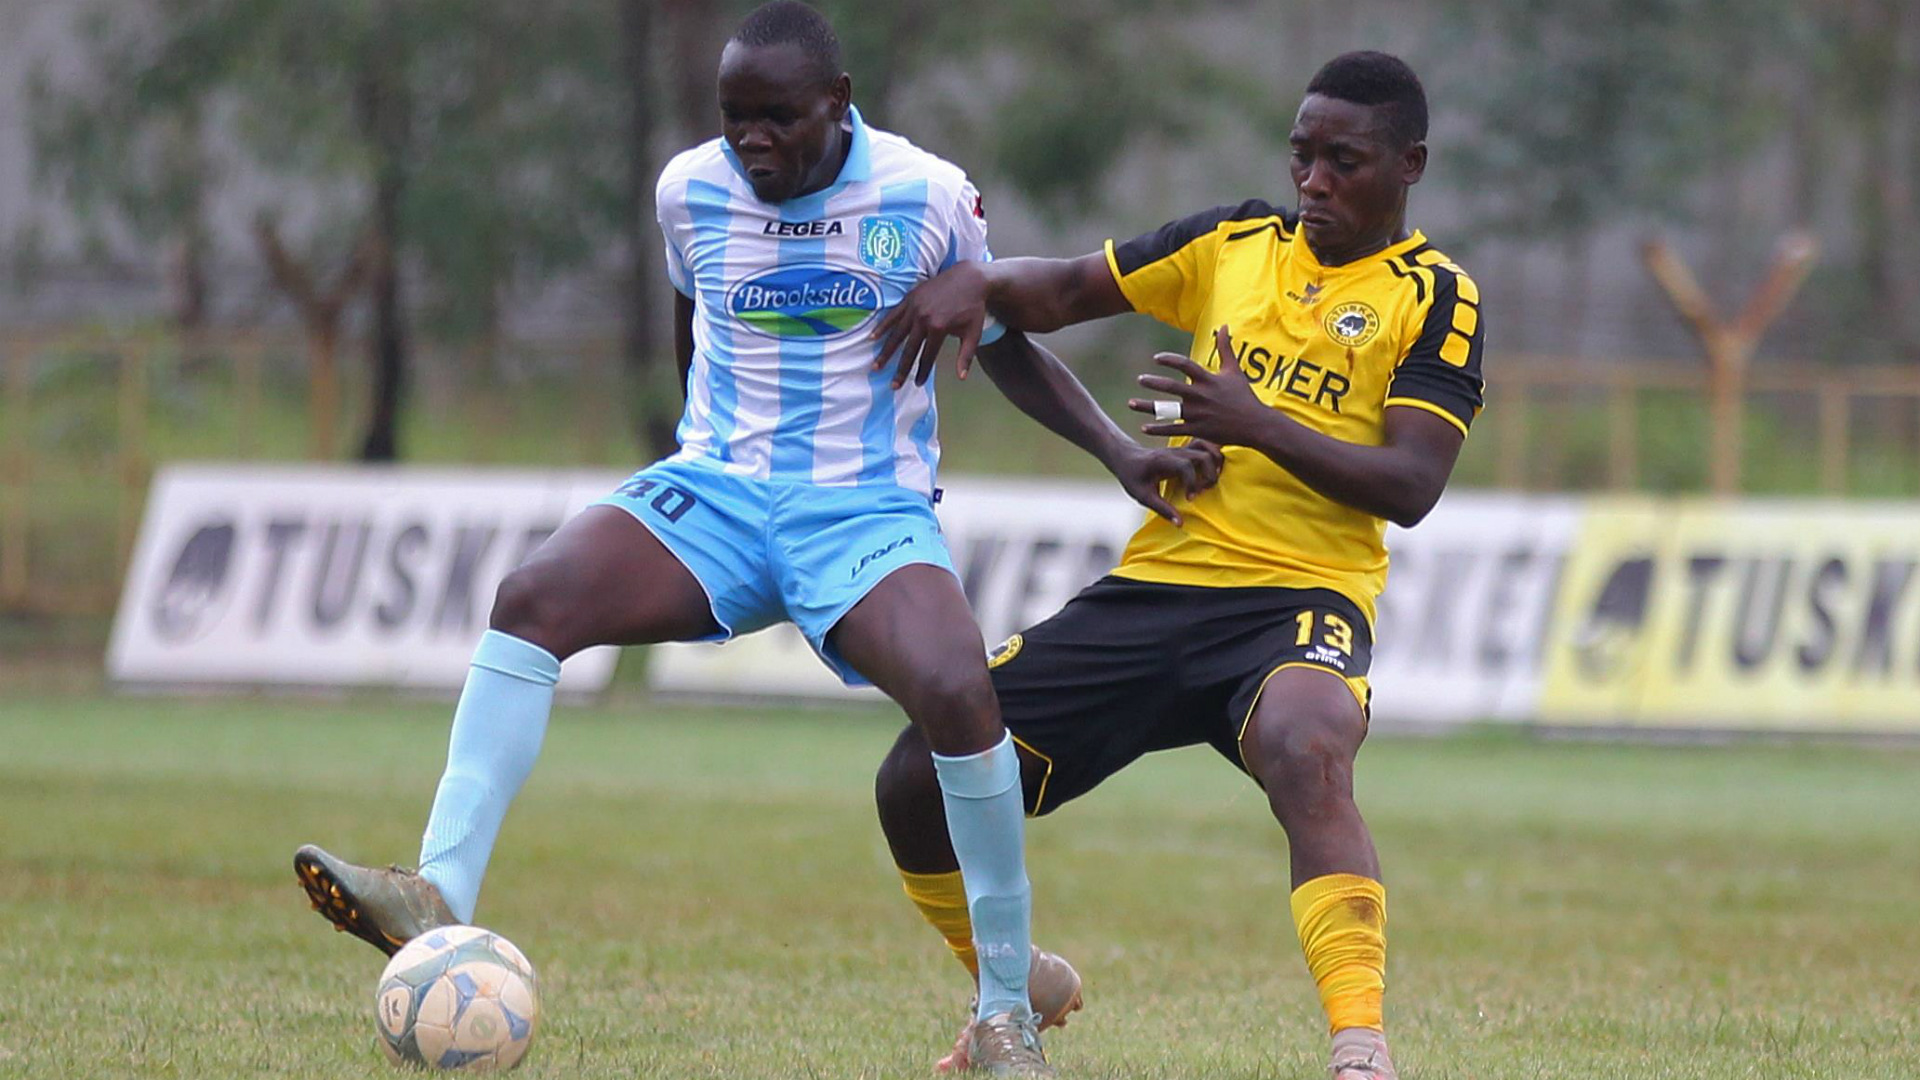 'The month-long trials in Spain were a success' - AFC Leopards midfielder Musa